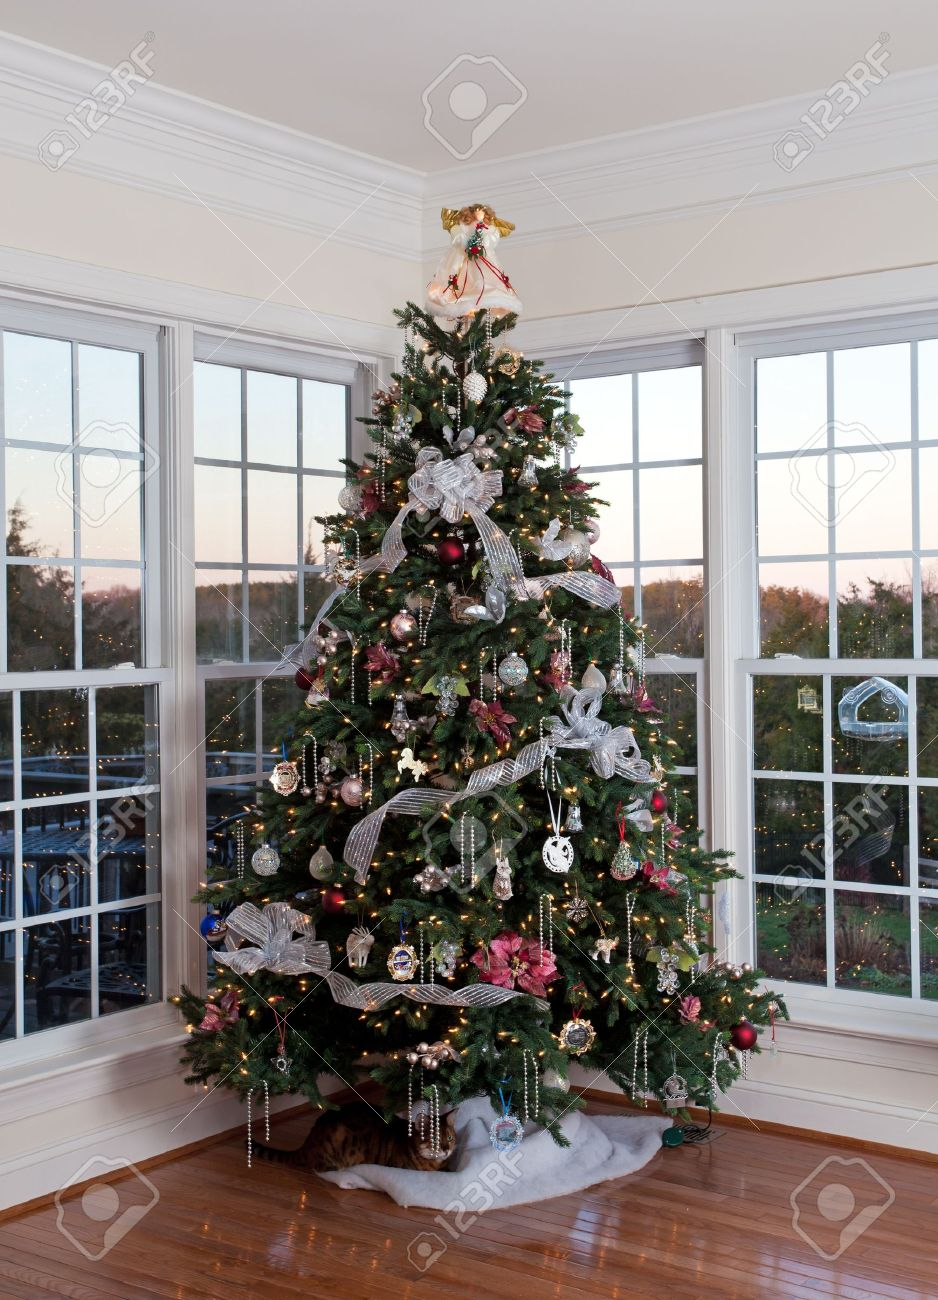 Christmas Tree Decorated With Silver And White Ribbons And Ornaments Stock Photo Picture And Royalty Free Image Image 11526583